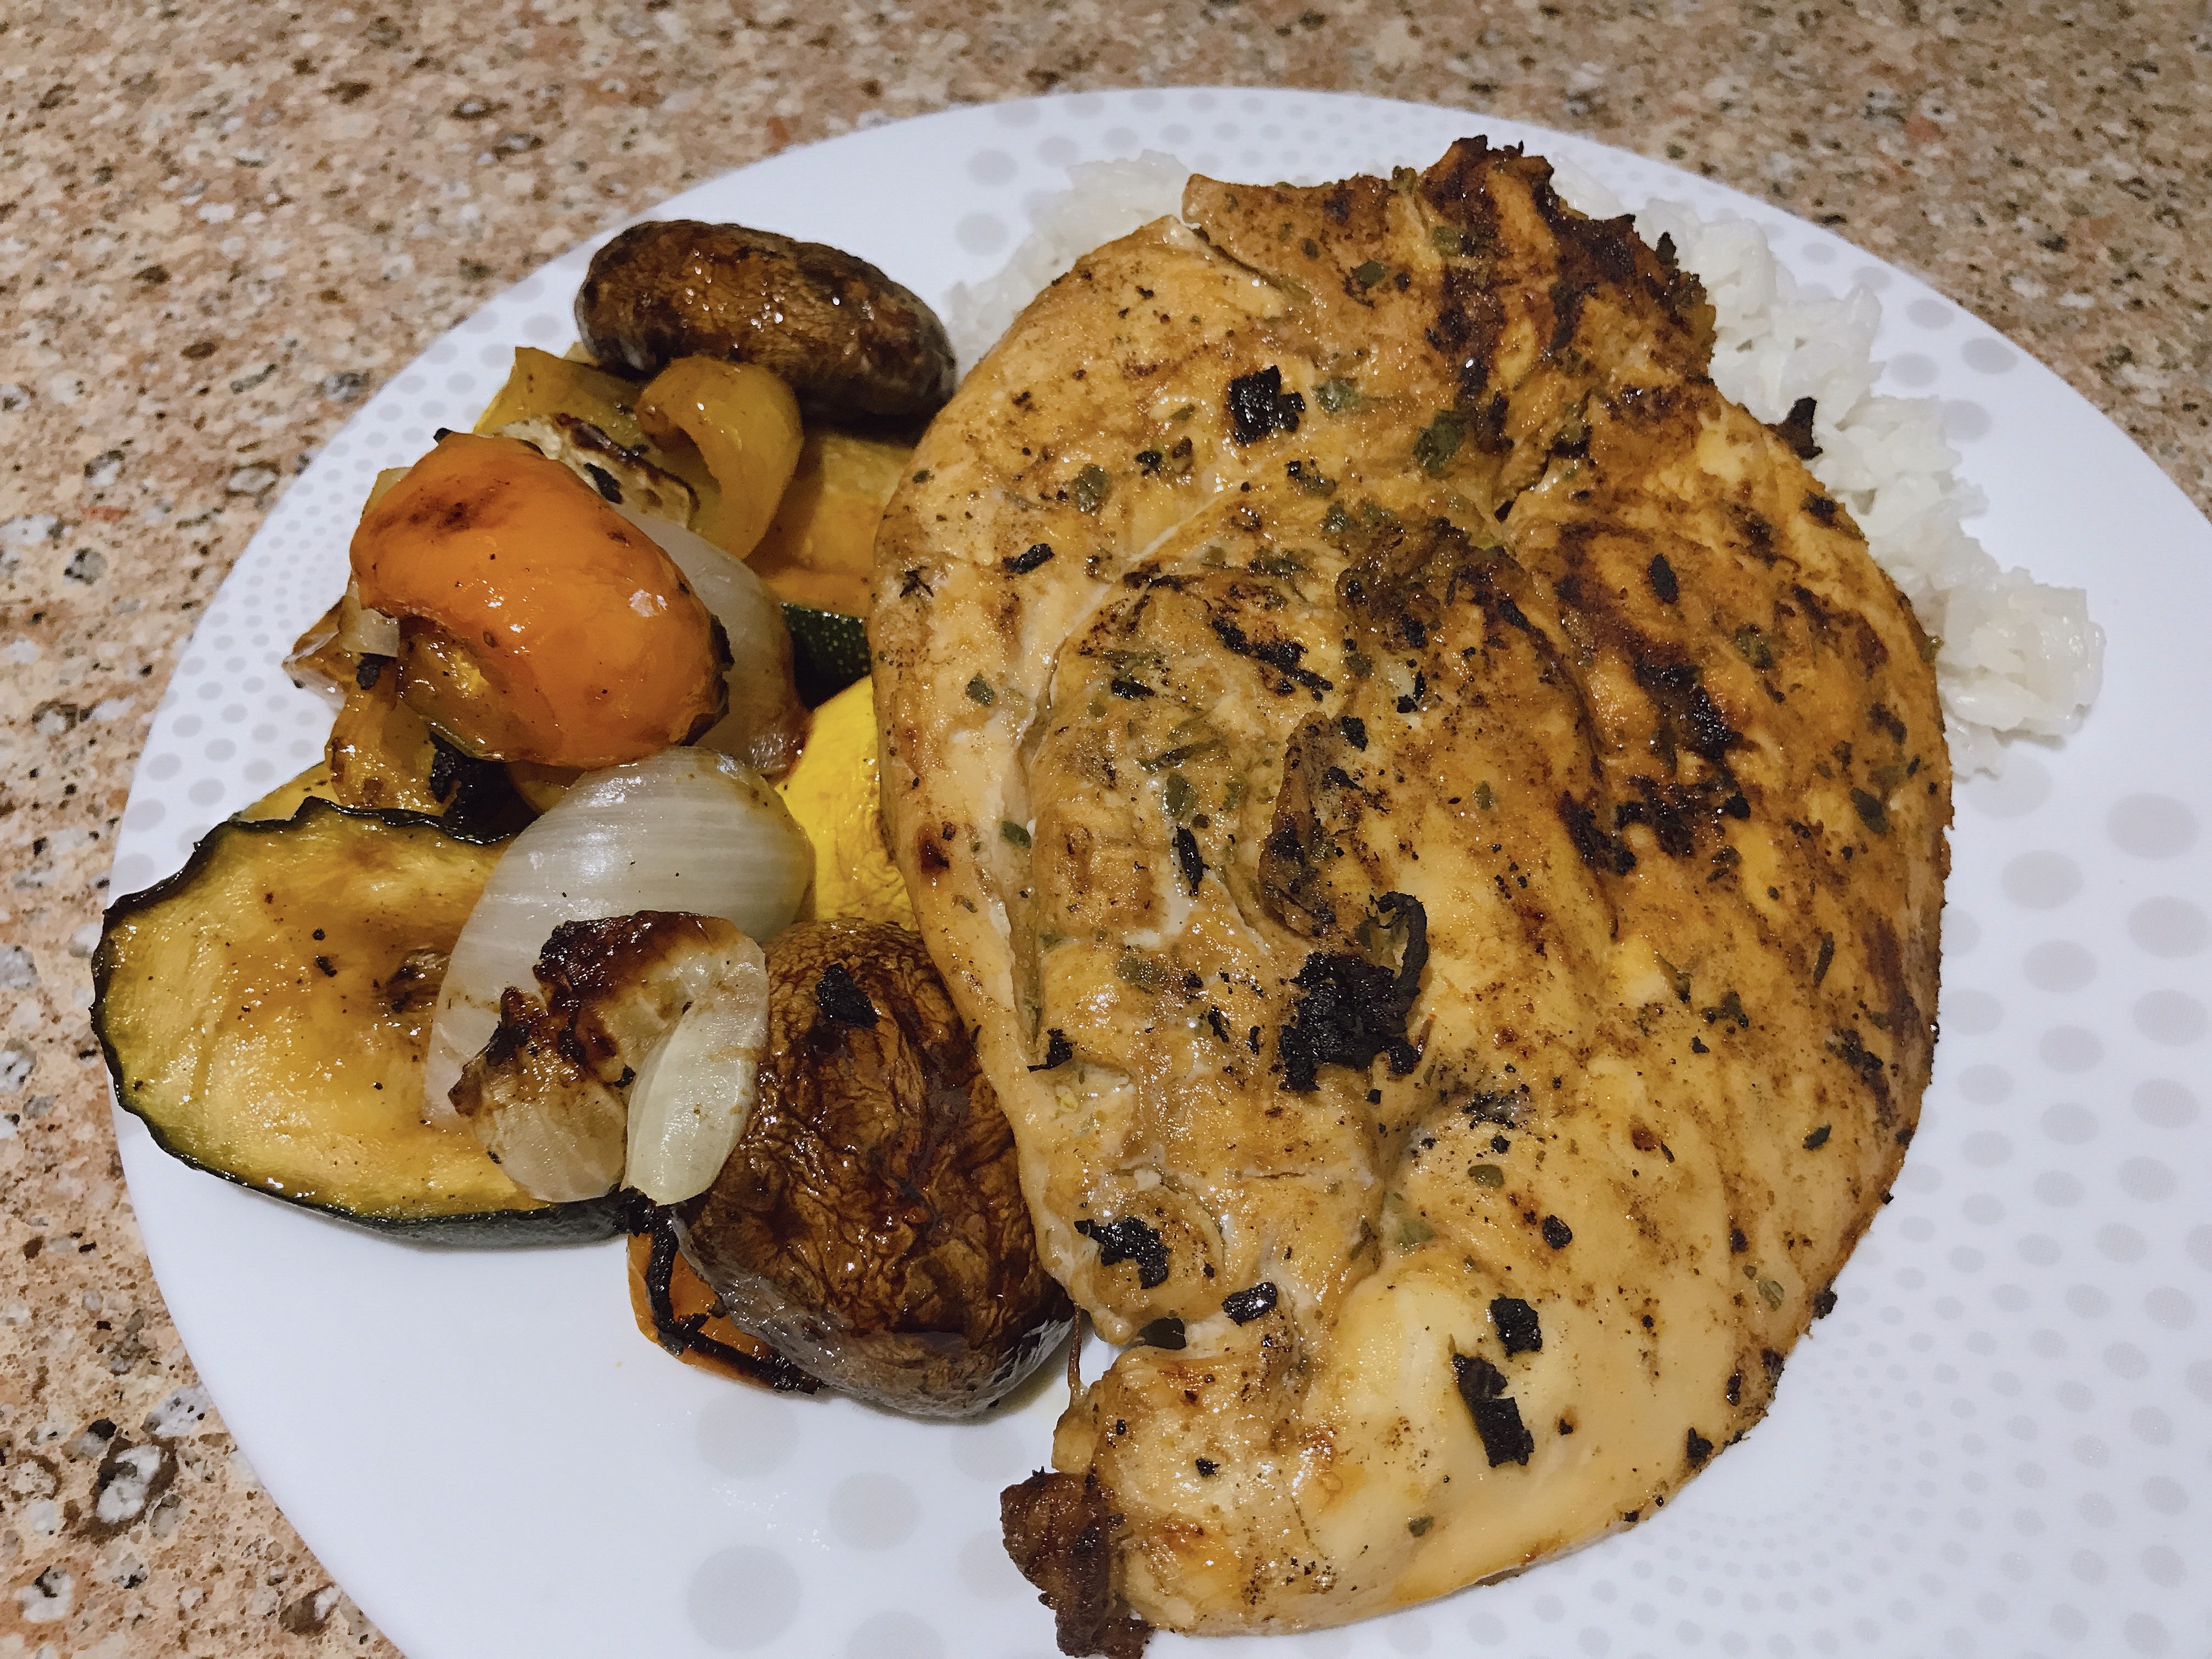 Grilled Pollo a la Brasa thedailygourmet